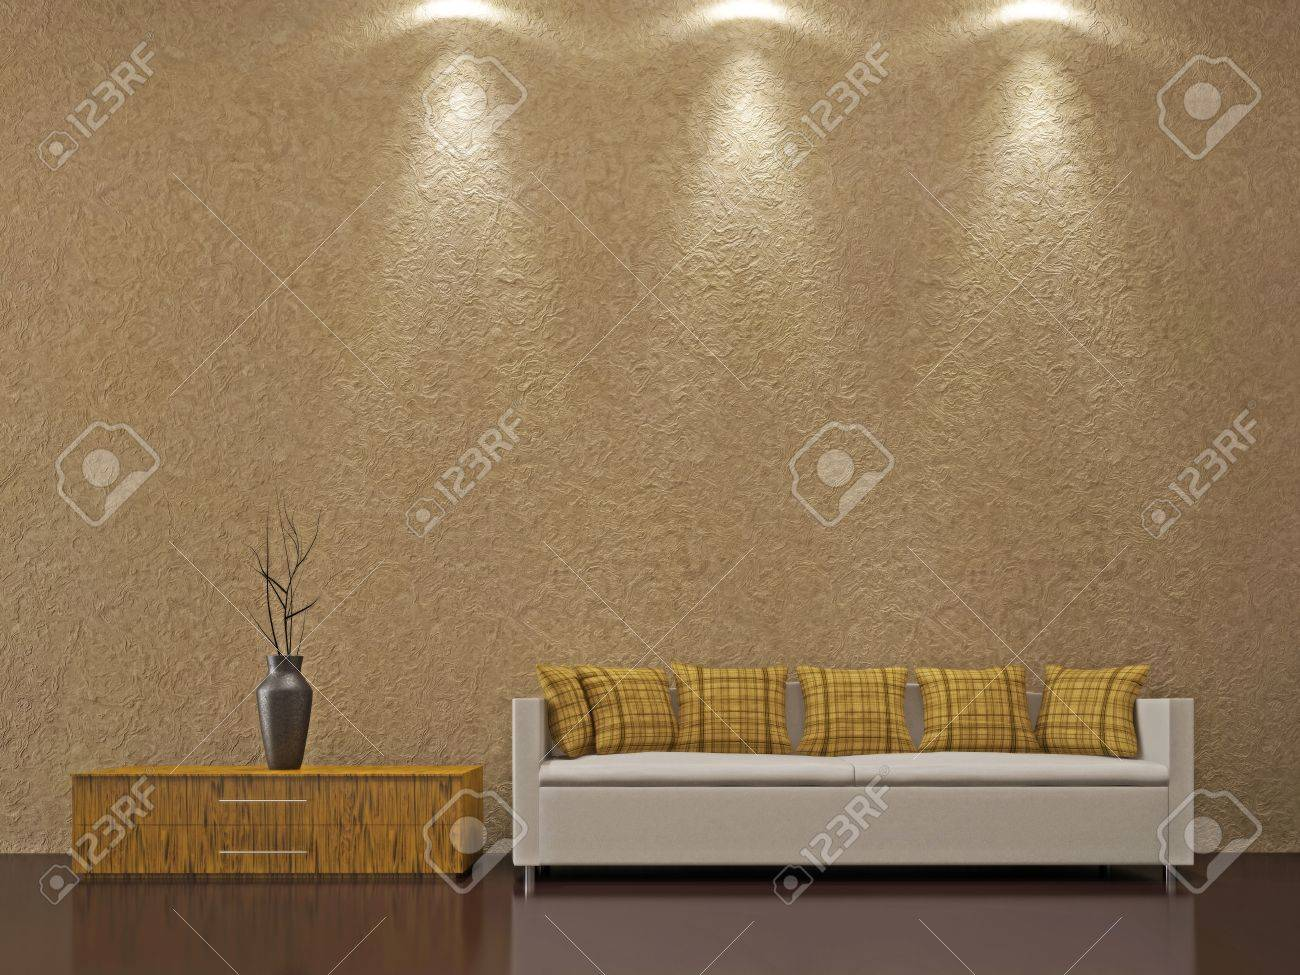 Sofa and a vase near the wall Stock Photo - 15651260